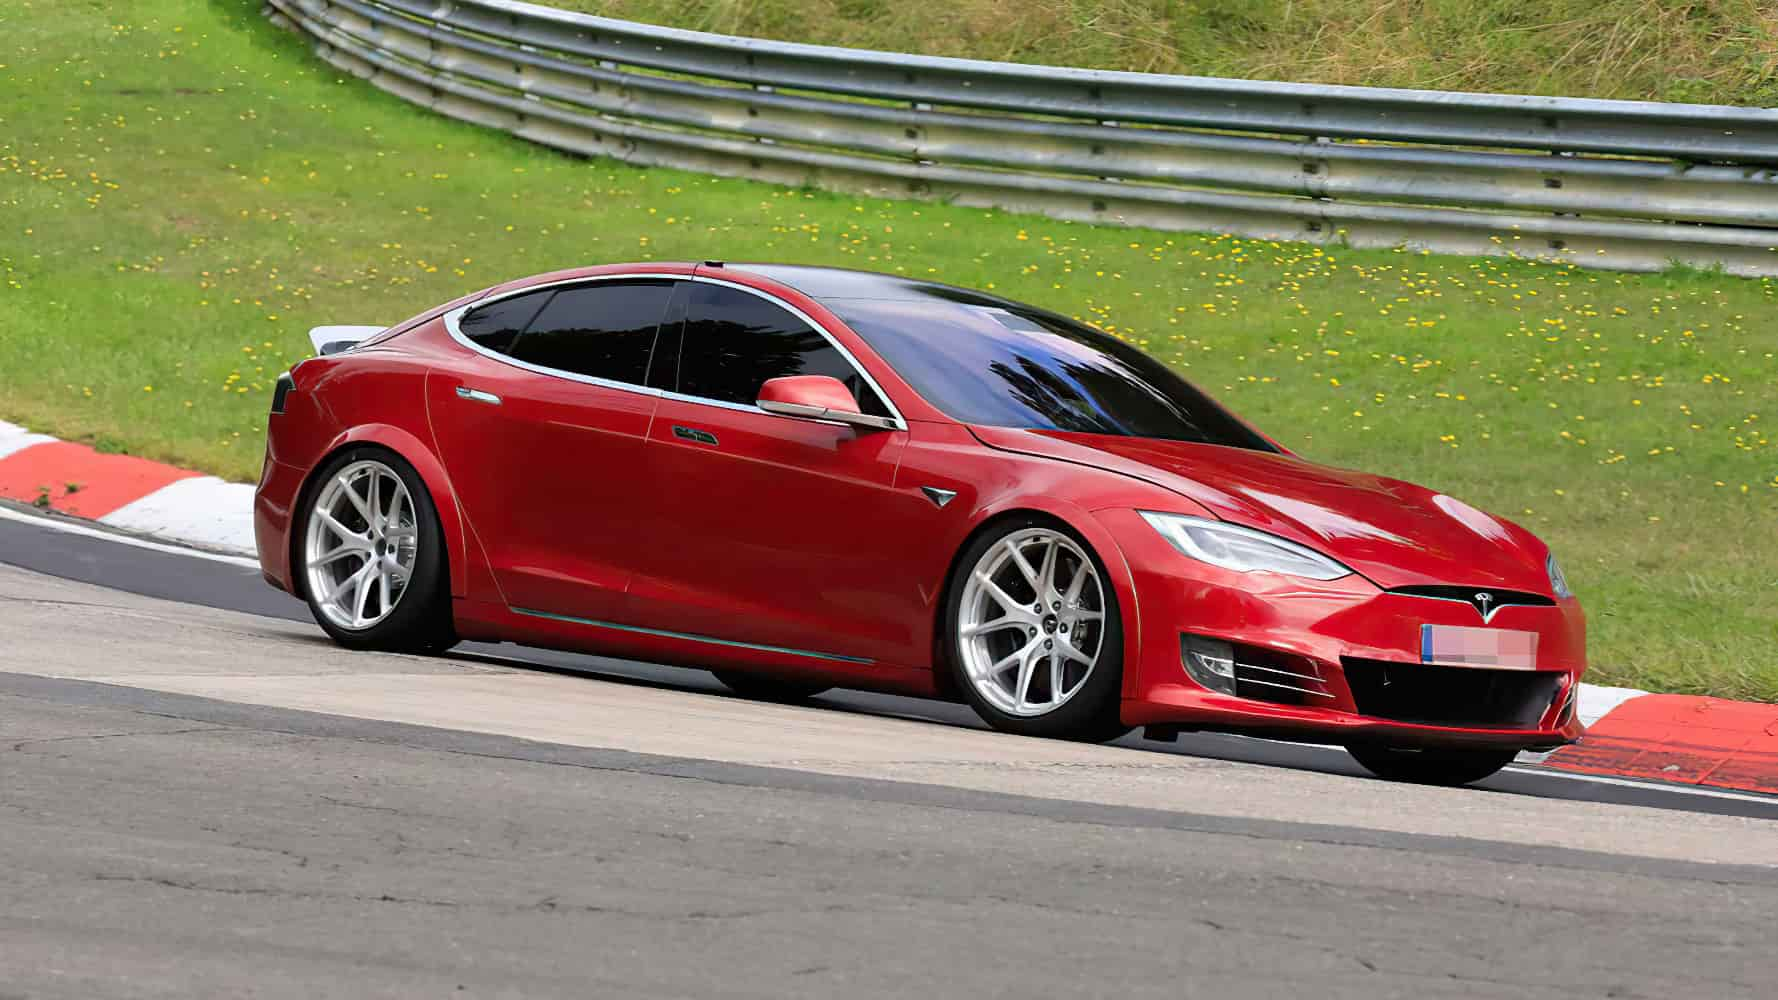 Tesla Model S with wider body